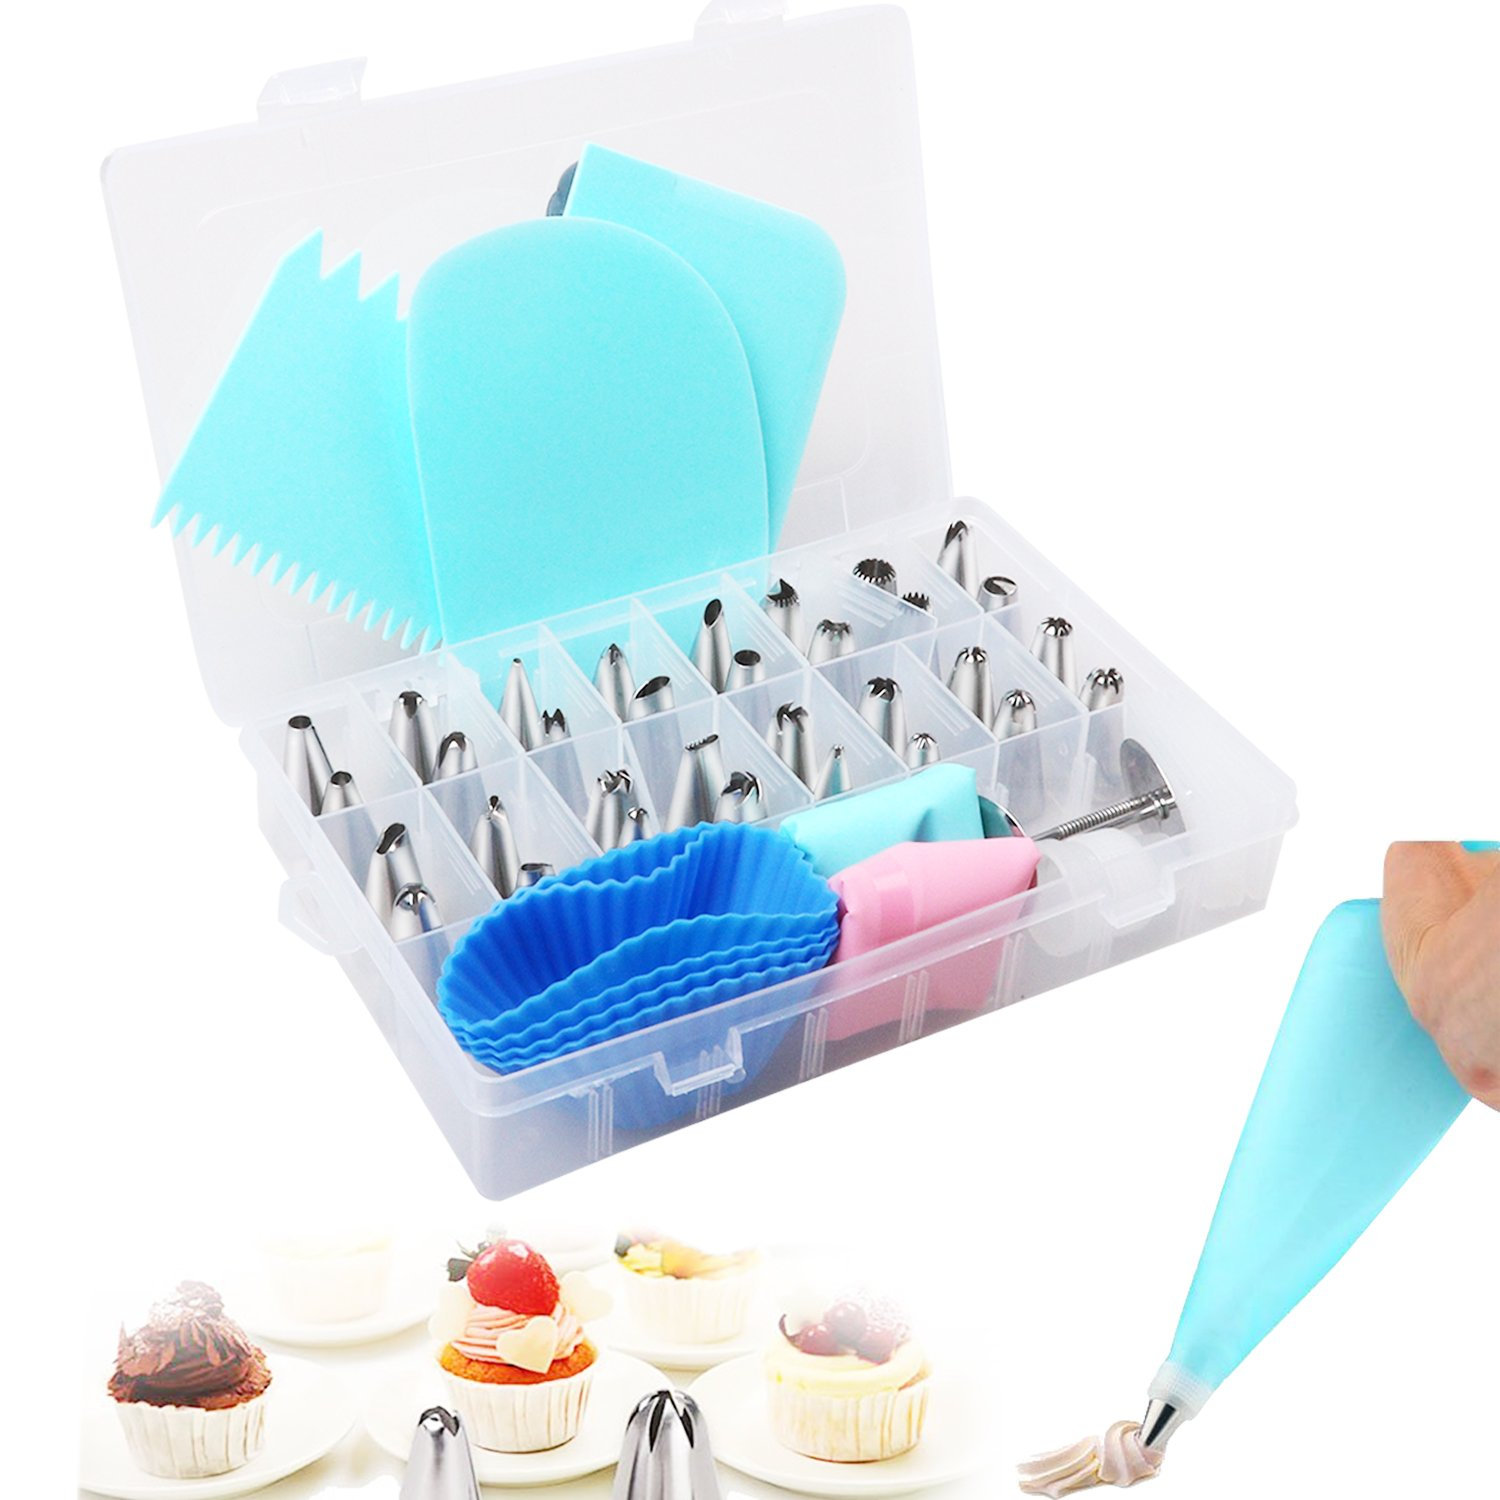 Cake Decorating Set, 32pcs Cake Piping Nozzles Tips Set with 2 Reusable Silicone Icing Bags/2 Coupler/3 Cake Scraper/4 Storage Case for Cupcakes/2 Flower Nails for DIY Cakes Birthday Cookies Cakes Pastry Baking Decorating Tools TWFRIC